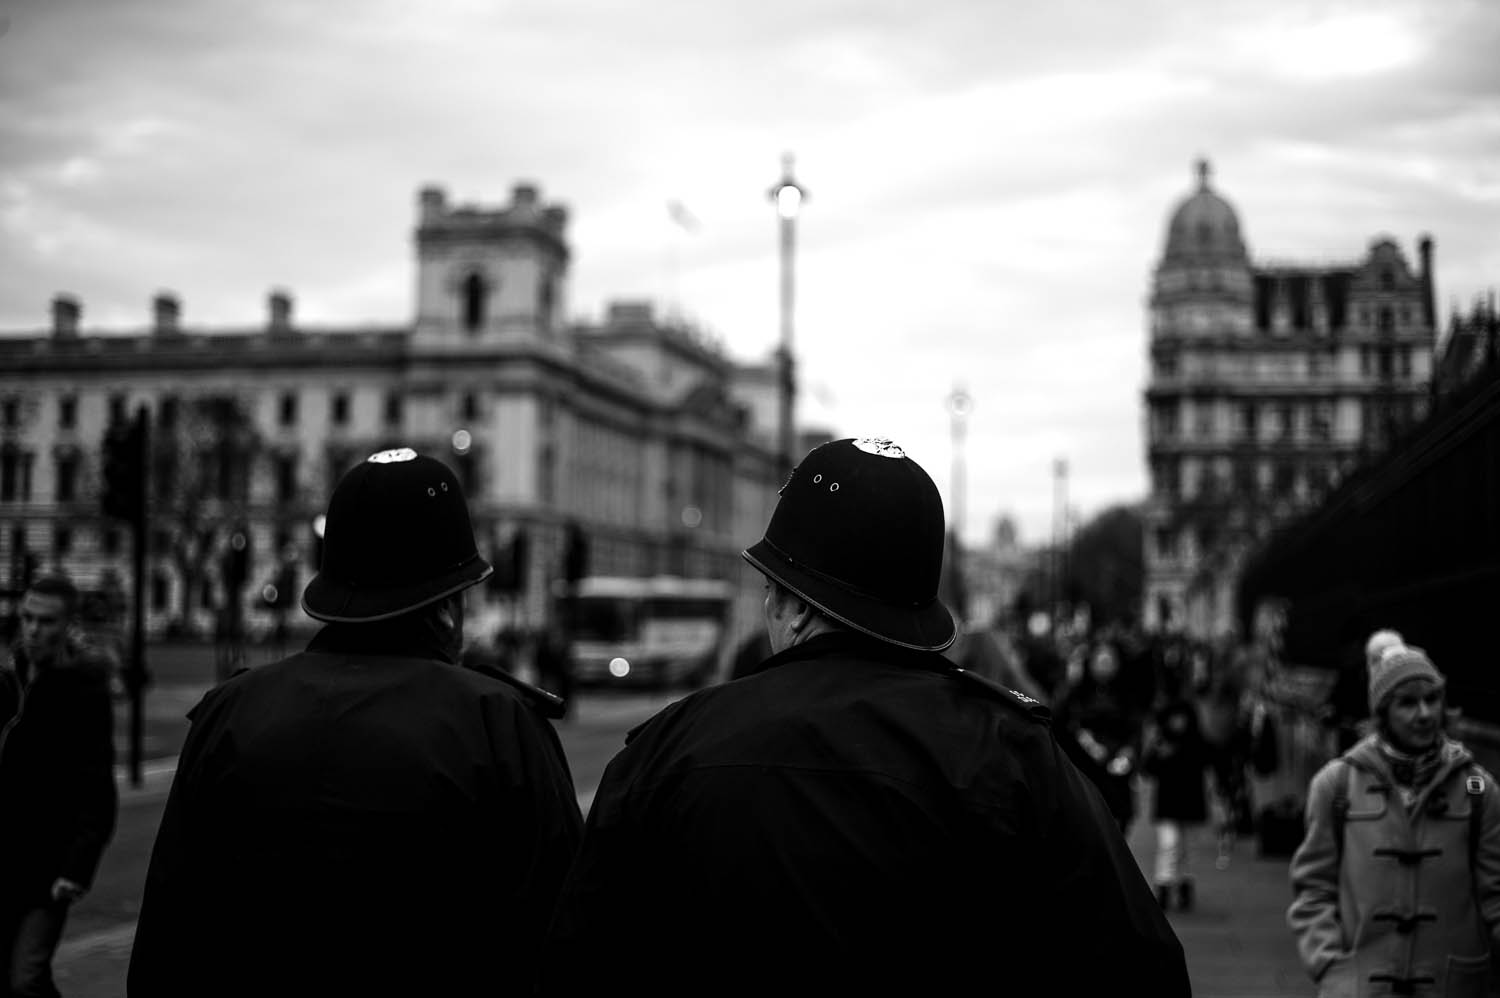 A pair of officers walking through London